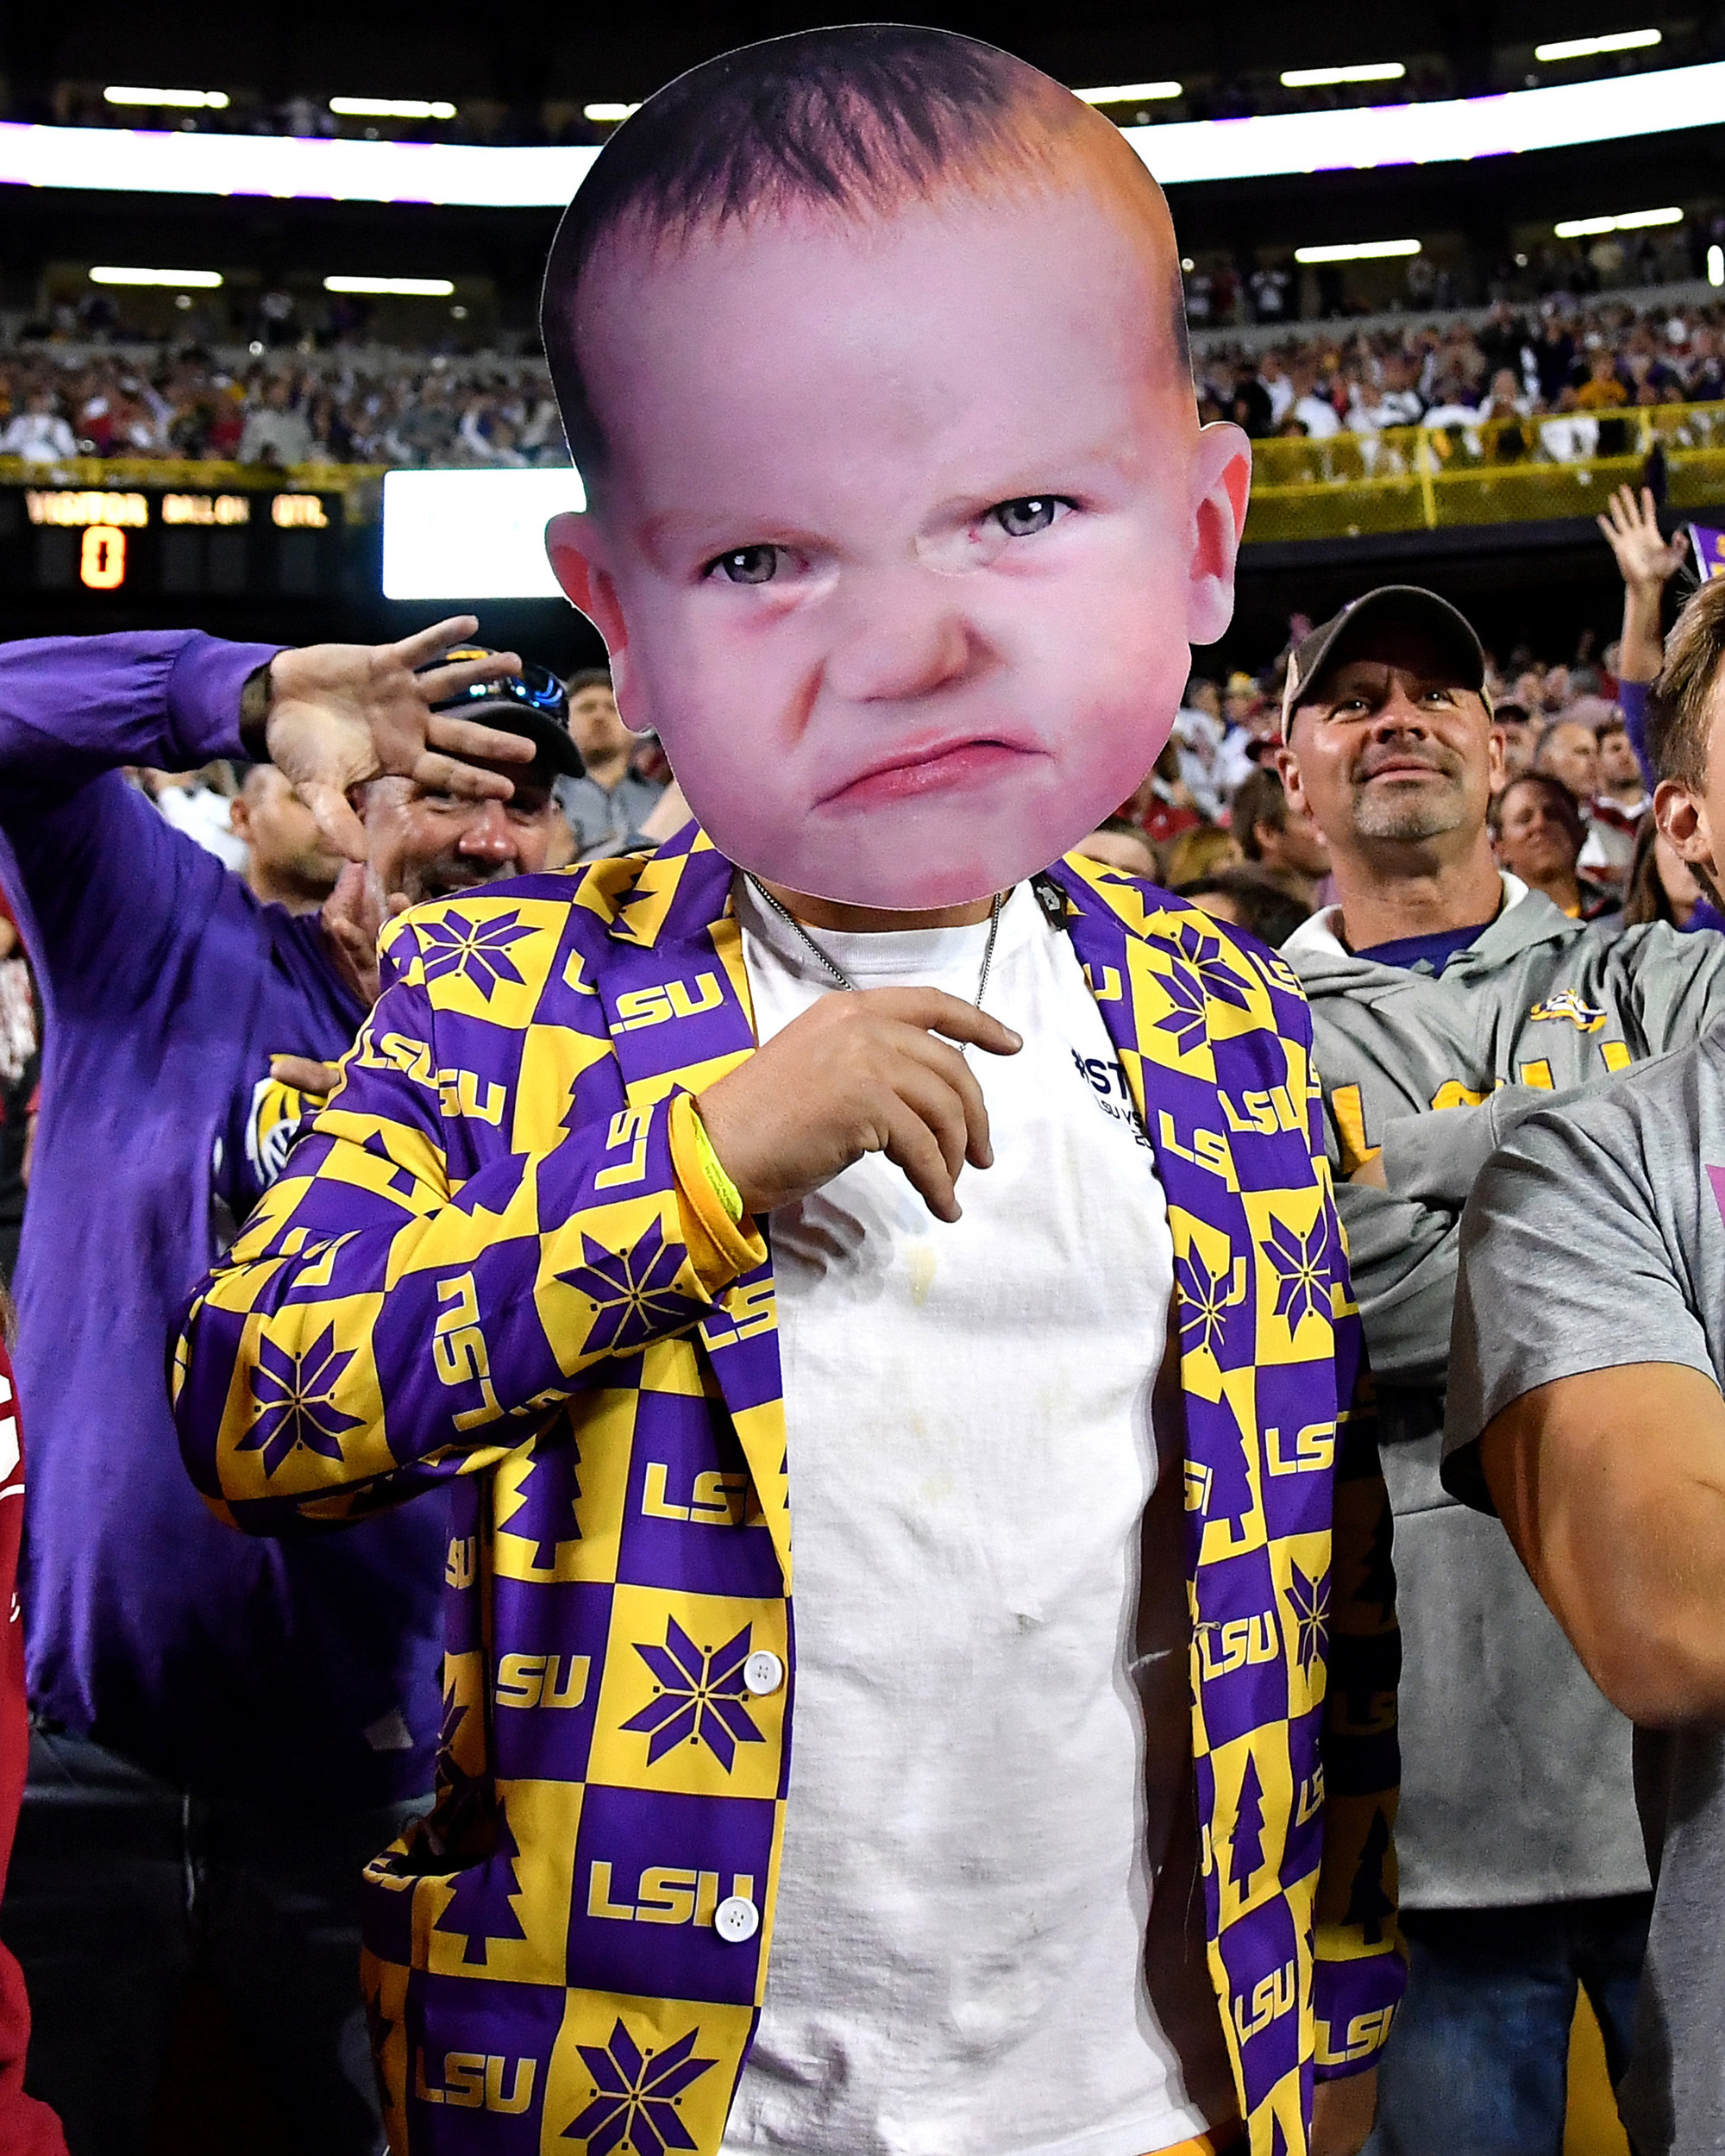 An LSU fan is pictured during the first half of an NCAA football game between the Alabama Crimson Tide and the LSU Tigers Saturday, November 3, 2018, at Tiger Stadium in Baton Rouge, La. Alabama wins 29-0. (Photo by Lee Walls)